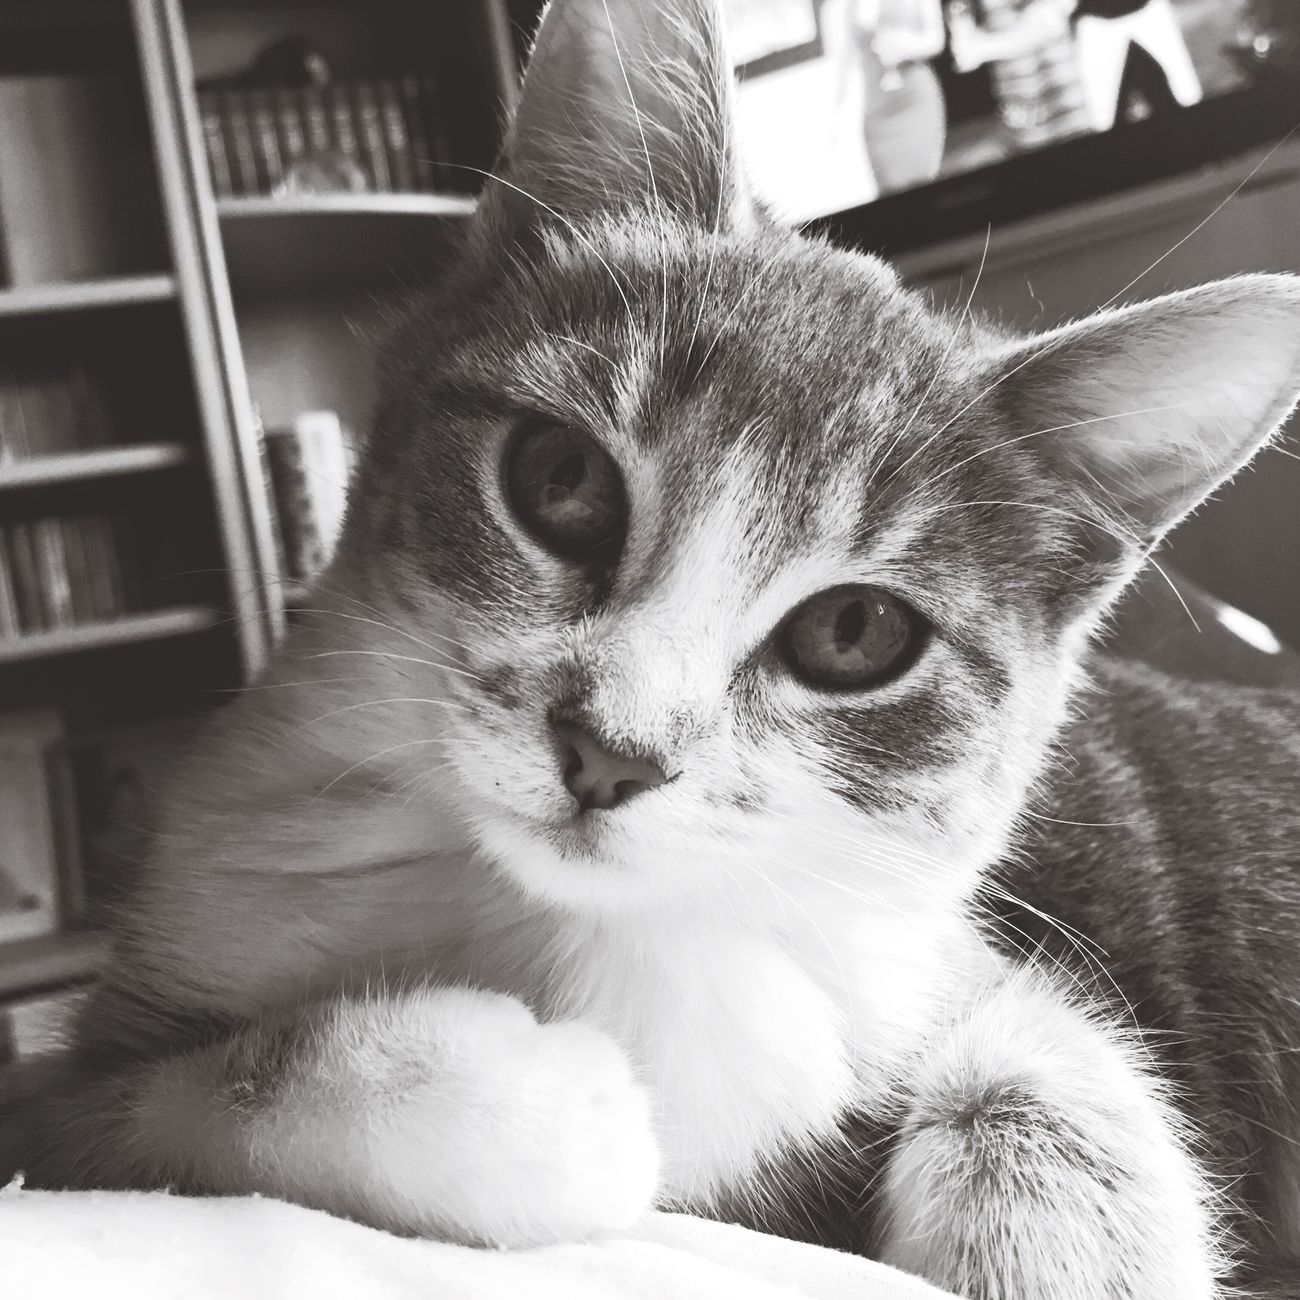 Babycat Chat Animal Domestic Cat Pets Domestic Animals Animal Themes One Animal Cat Cats Cute Animals Cats Of EyeEm Cute Pets Mycat Chaton Baby Love Cute Cats Blackandwhite